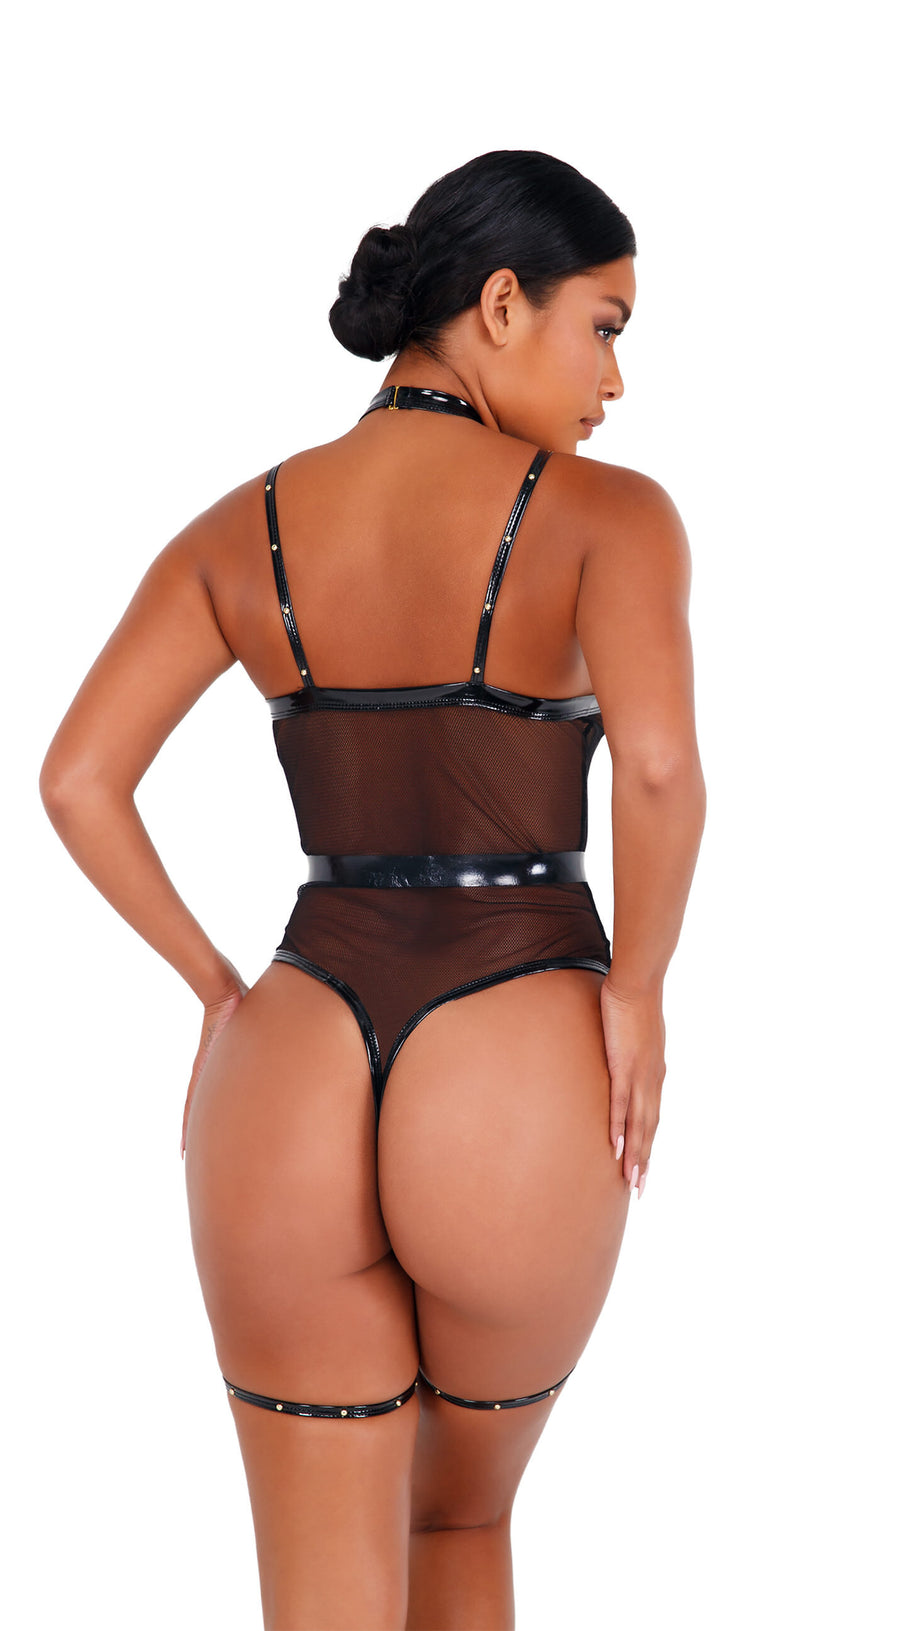 LI435 - 2pc Vinyl Strappy Bodysuit